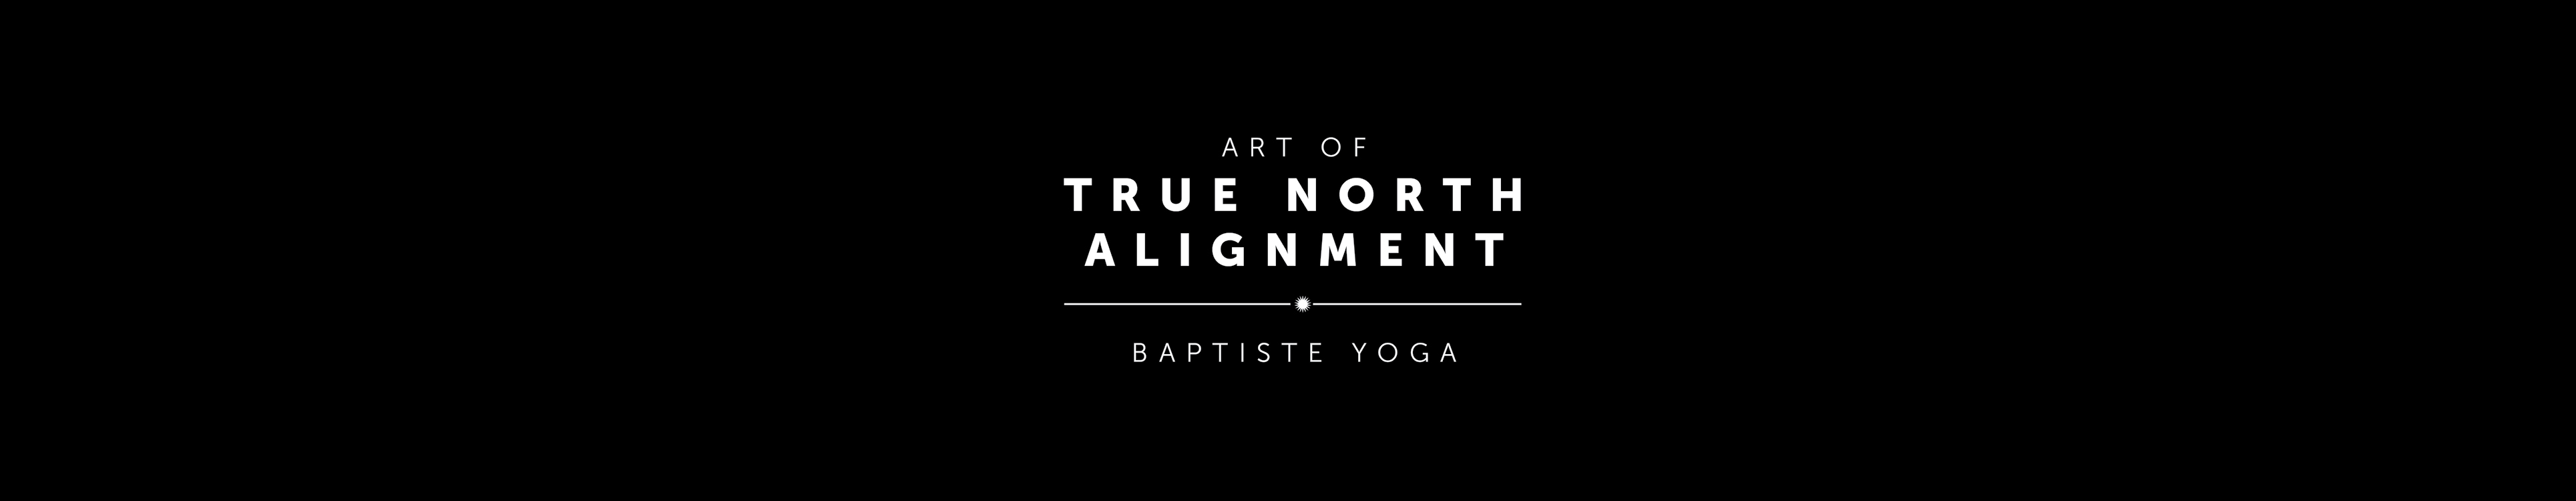 Firefly Yoga | Art of True North Alignment